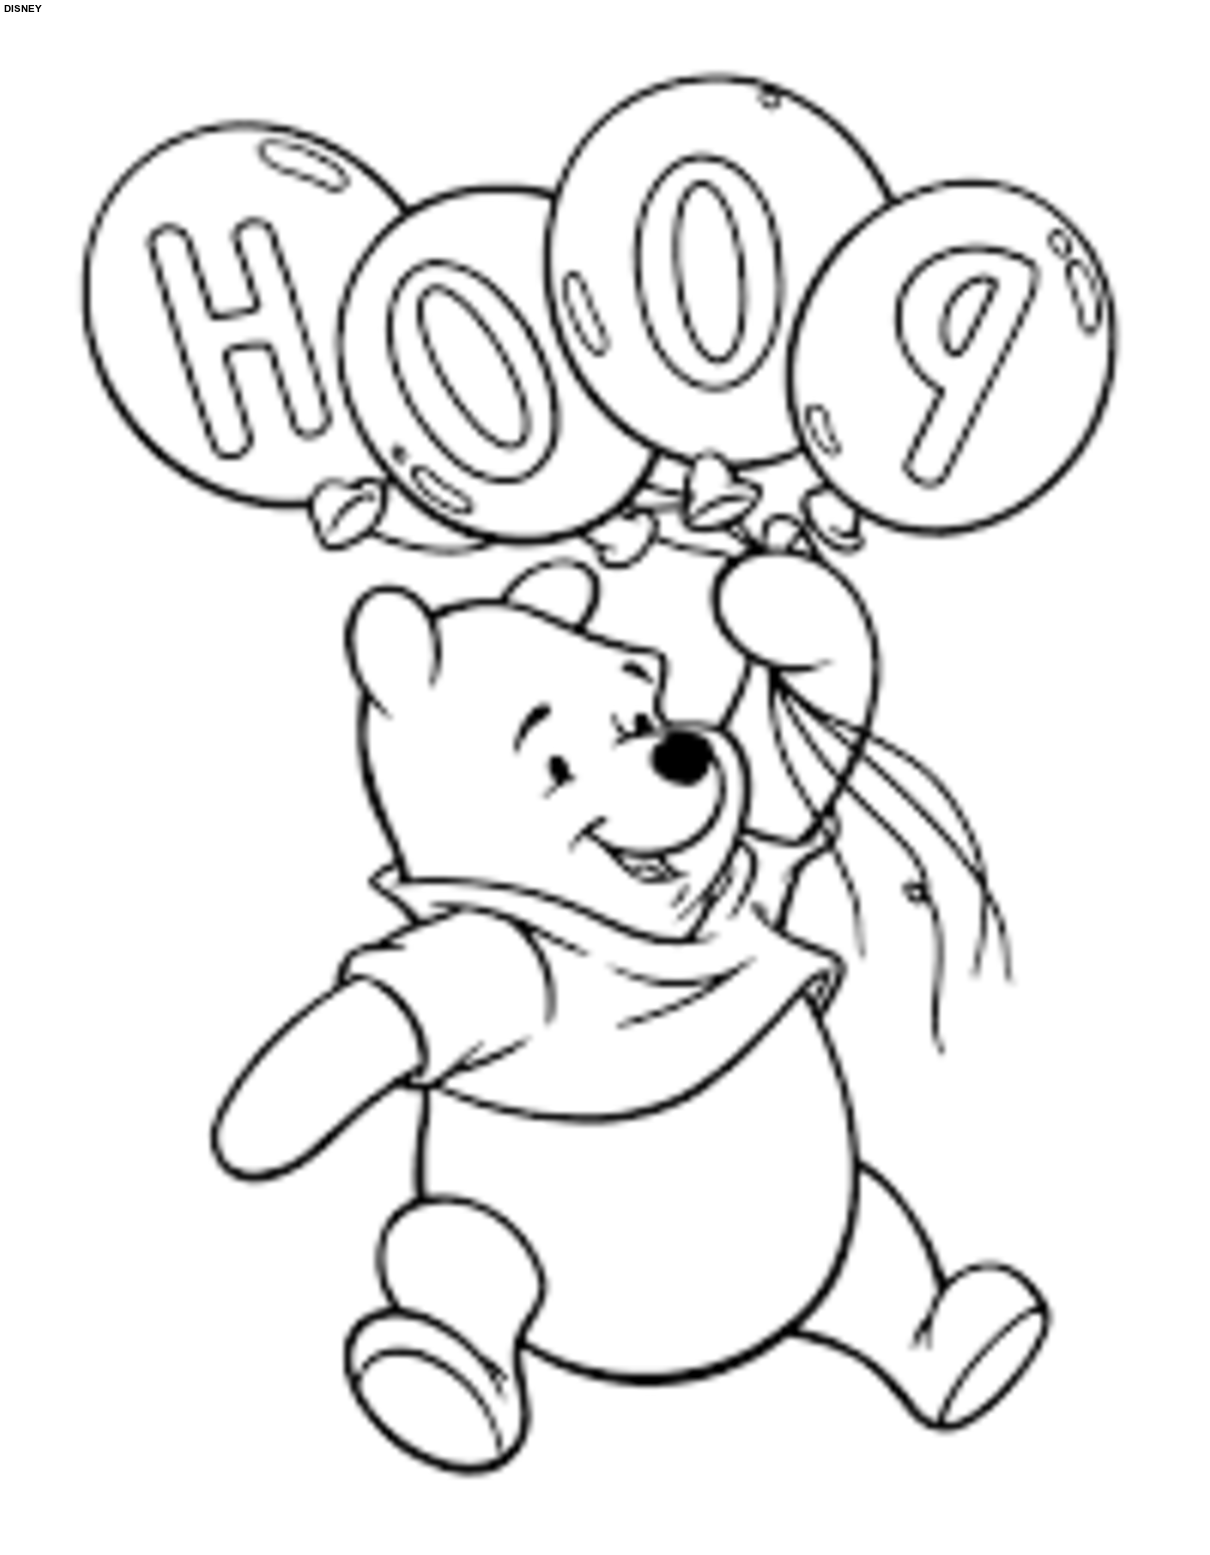 Coloring pictures disney characters - Disney Coloring Pages Disney Colouring Pages Colouring In Disney Disney Coloring Pages To